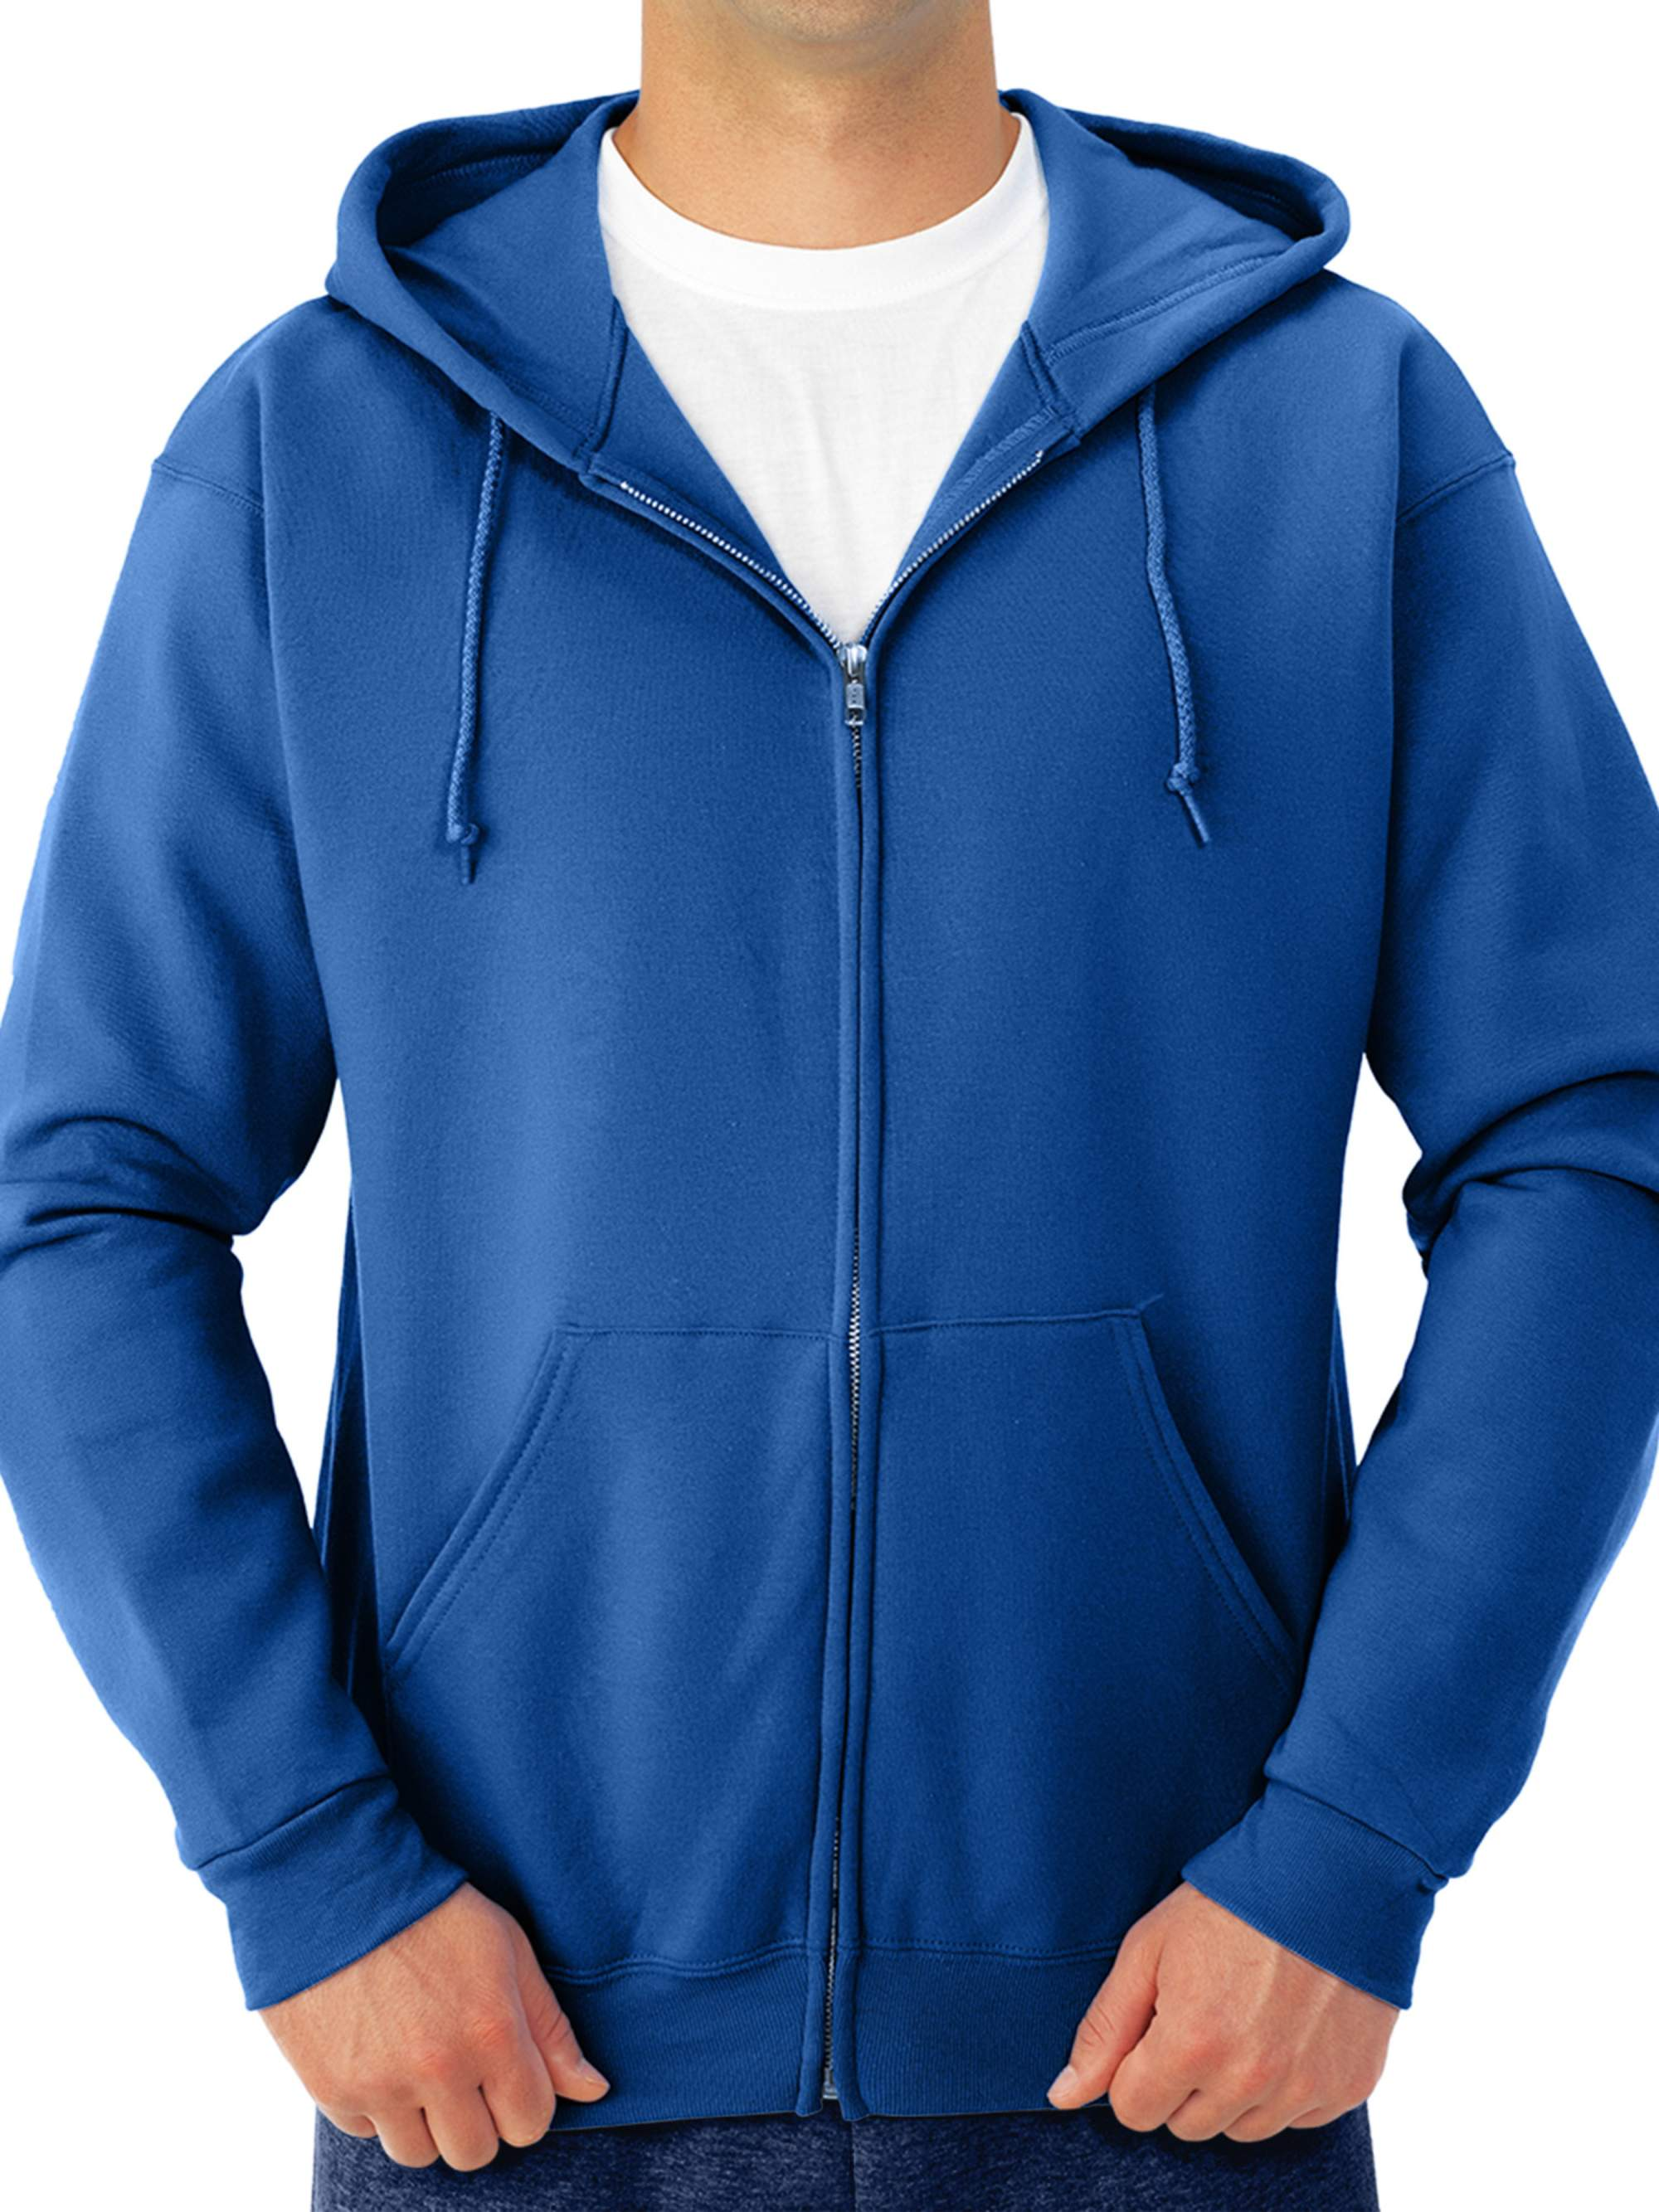 Big Men's Soft Medium-Weight Fleece Full Zip Hooded Jacket